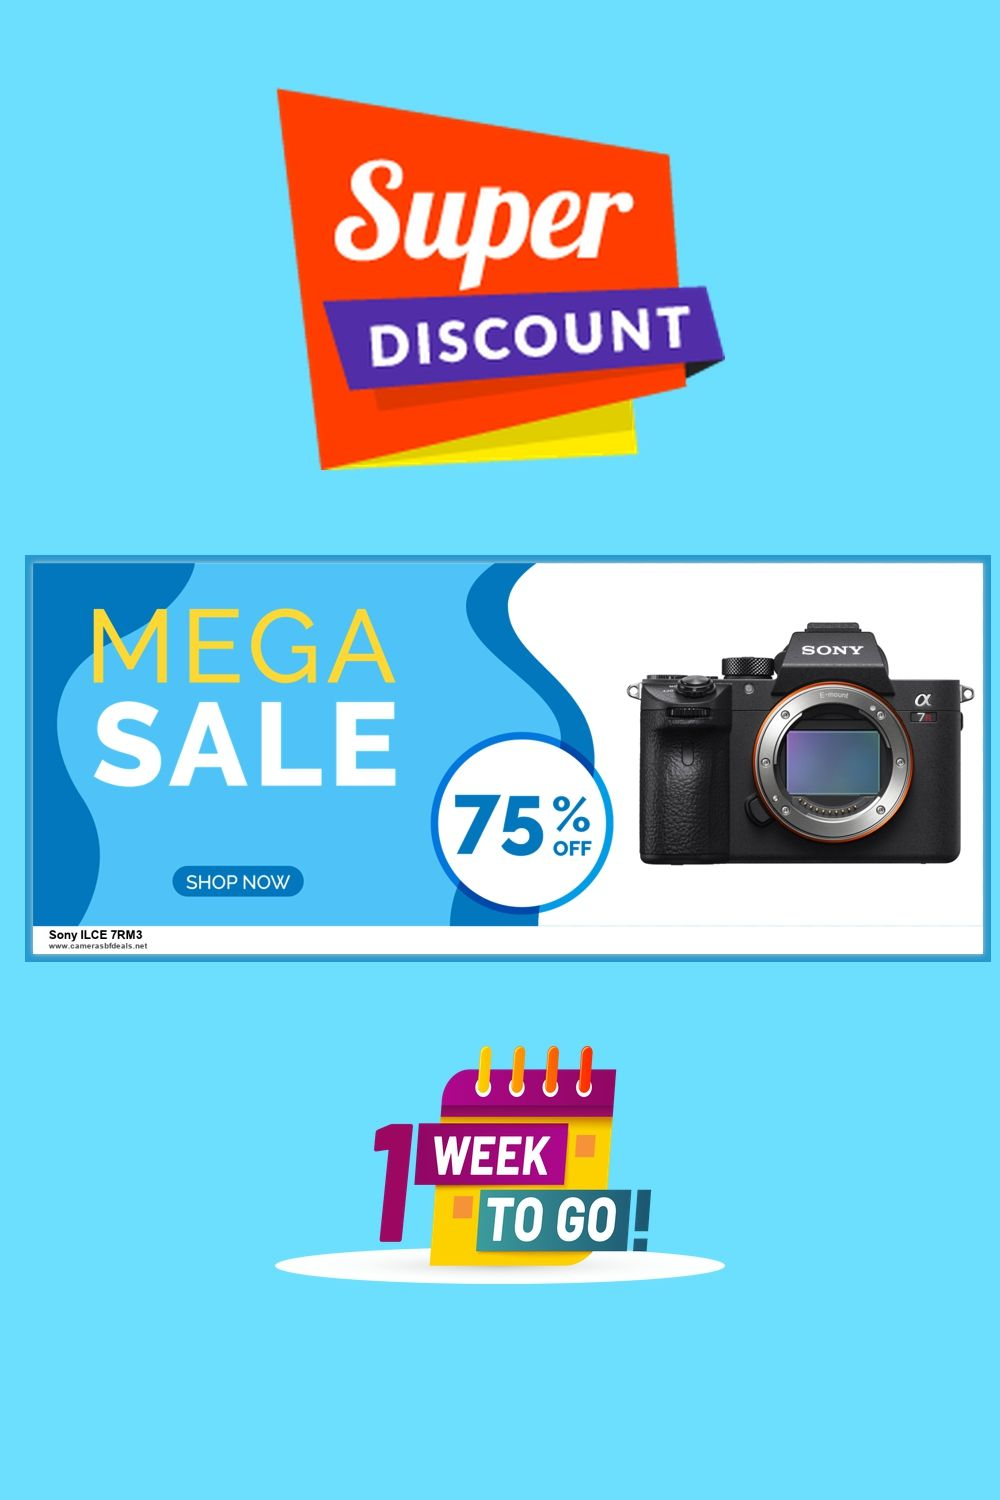 List Of 10 Sony Ilce 7rm3 Black Friday Deals 2020 In 2020 Black Friday Black Friday Deals Sony